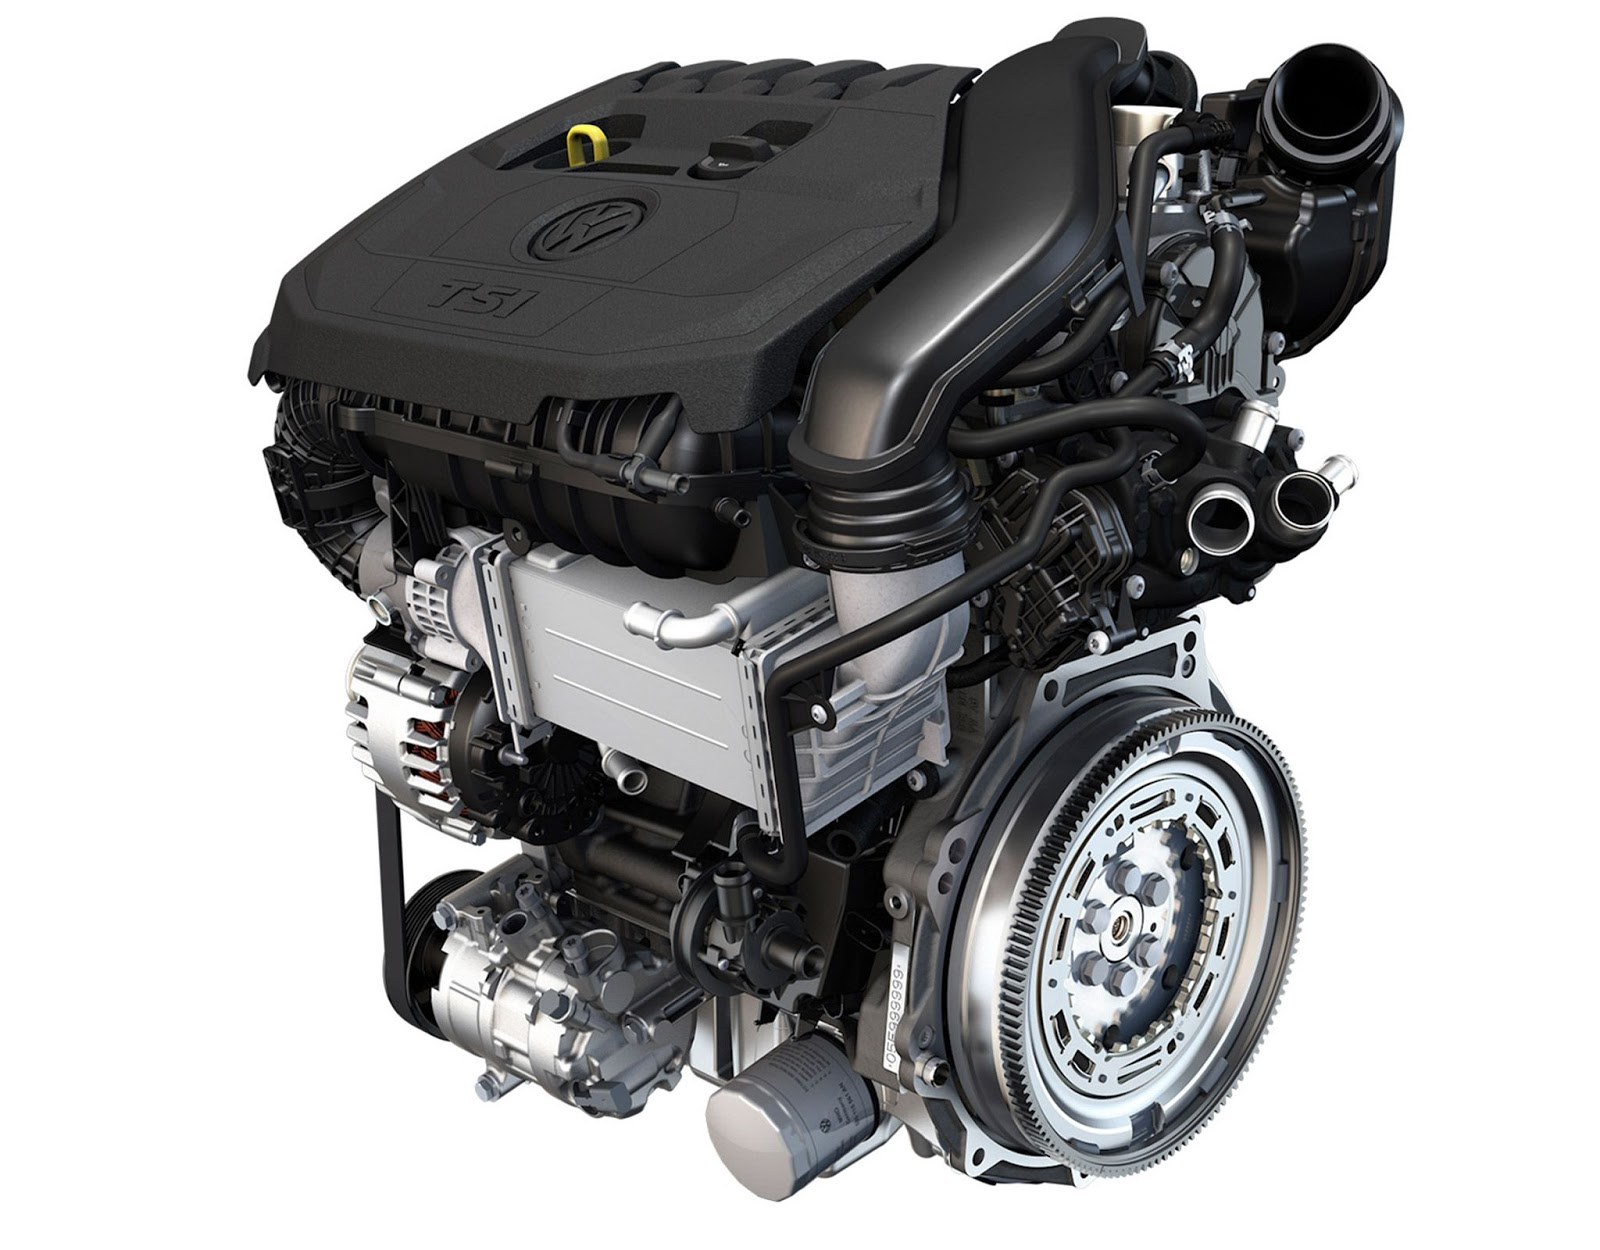 Admirable New 1 5 L Turbo 4 Cylinder Engine In The Vw Lineup Car Guys Paradise Wiring Cloud Eachirenstrafr09Org